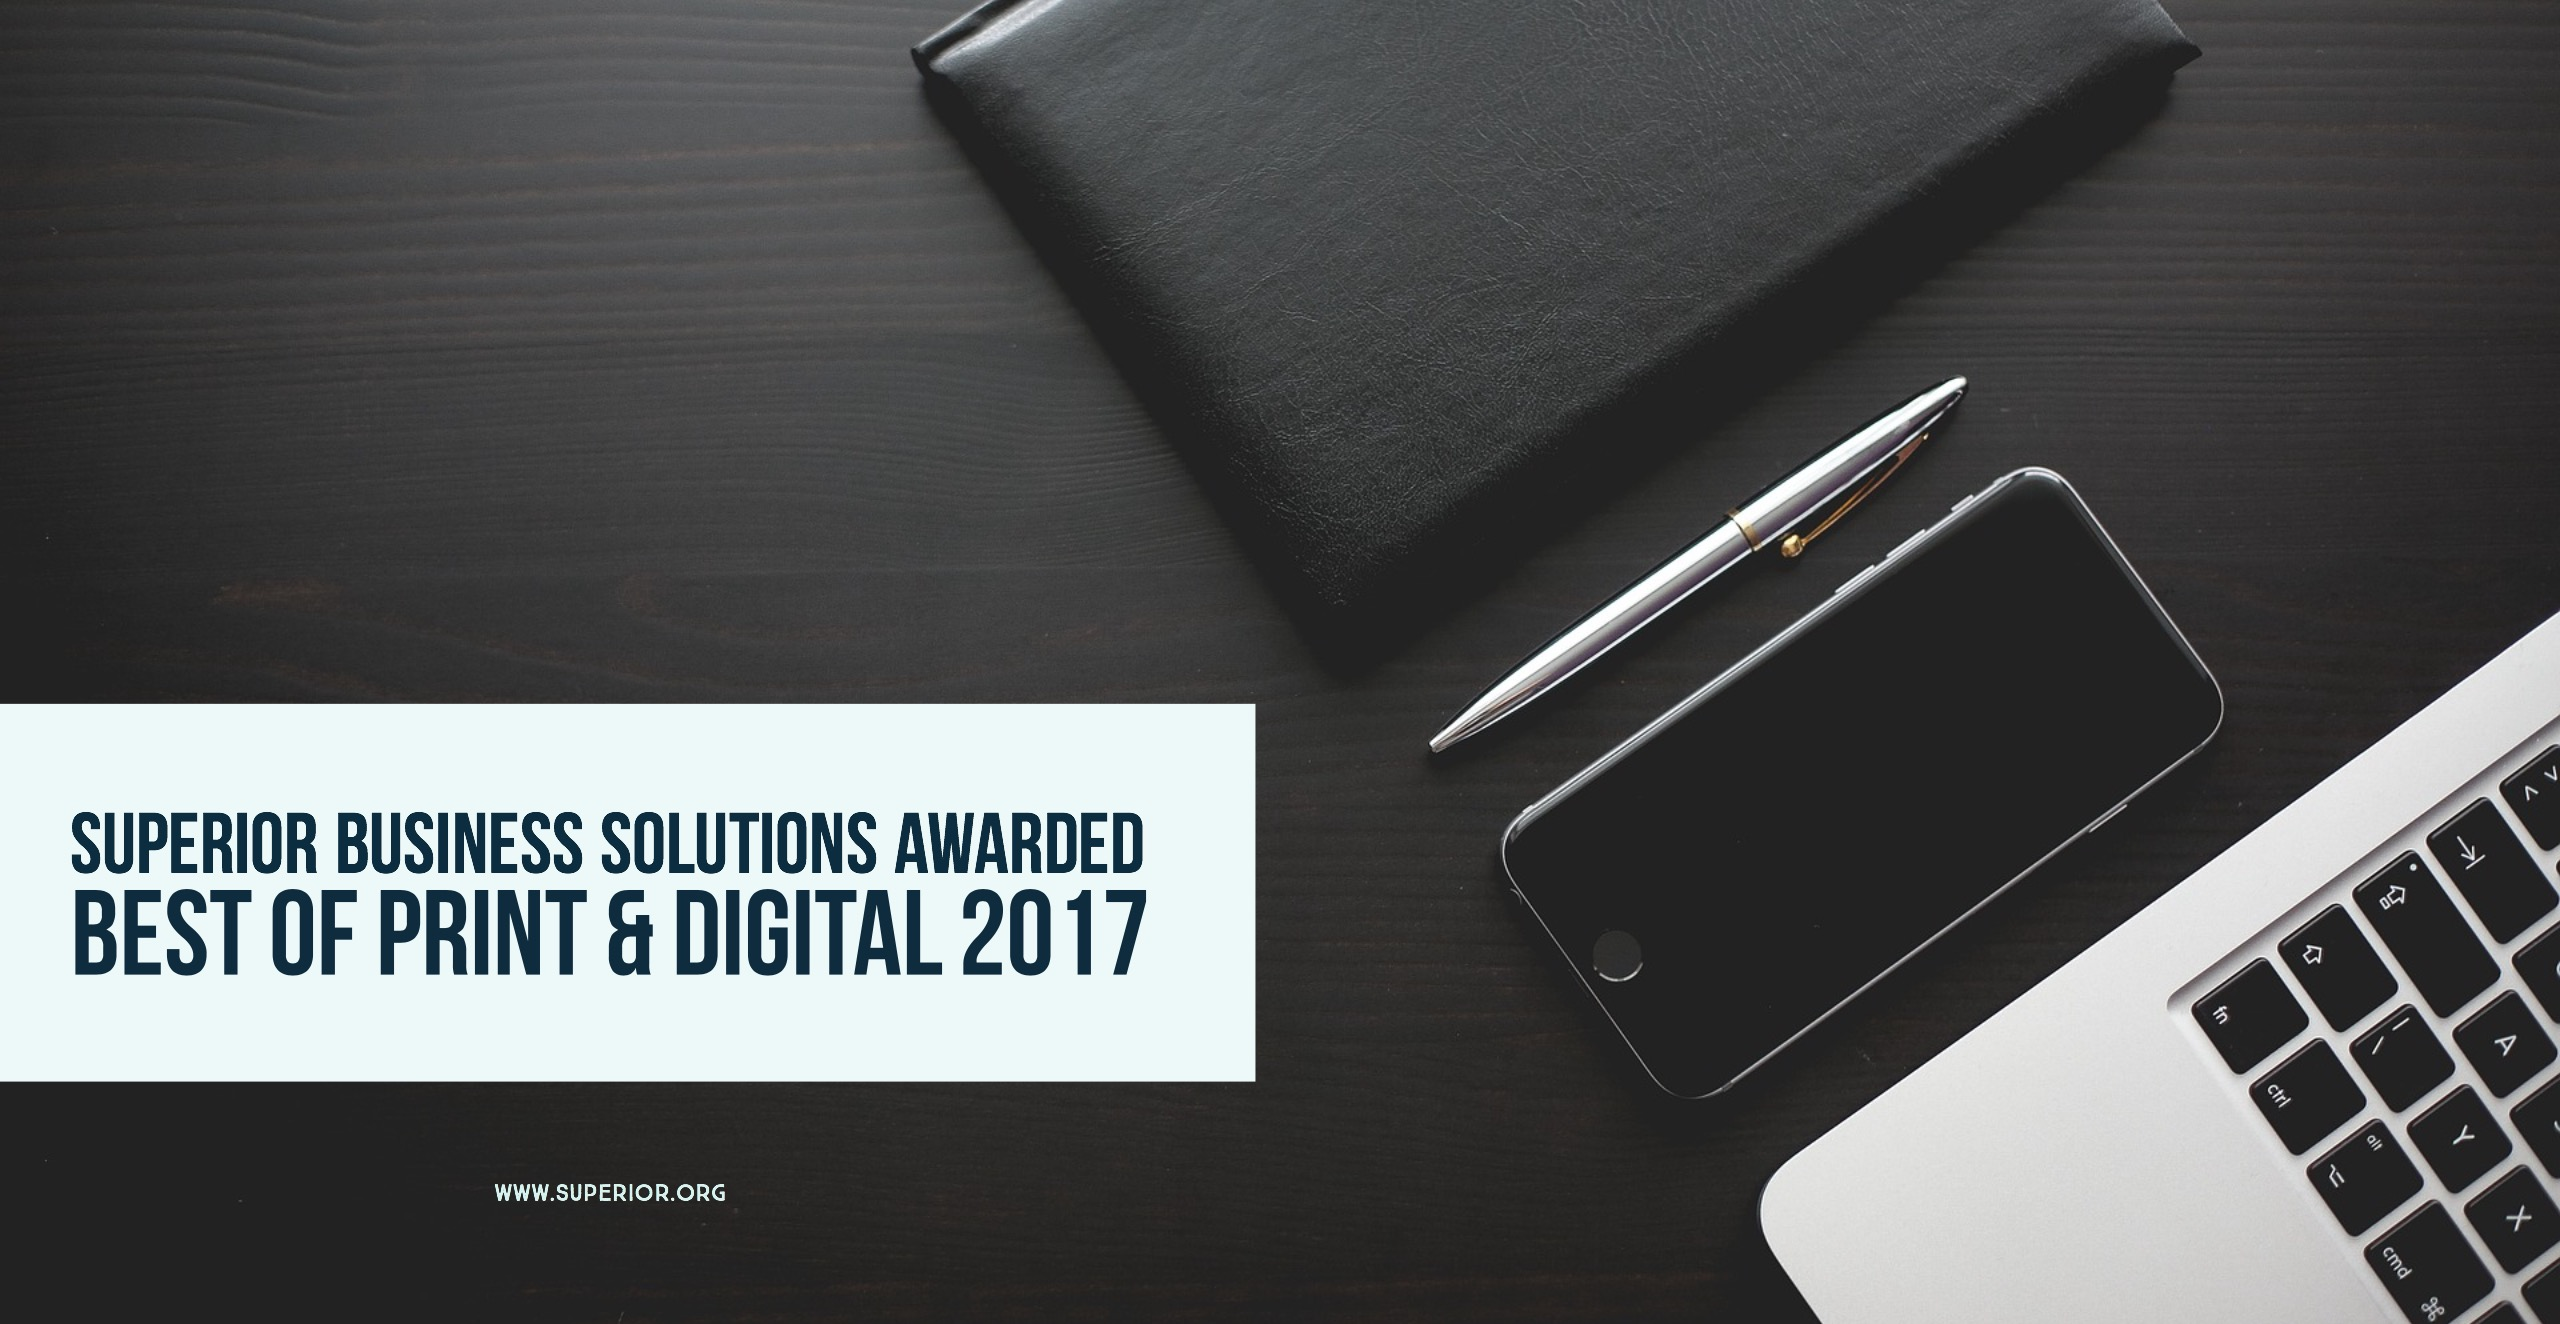 Superior Business Solutions' Customers Rank Them Best In Print and Digital 2017